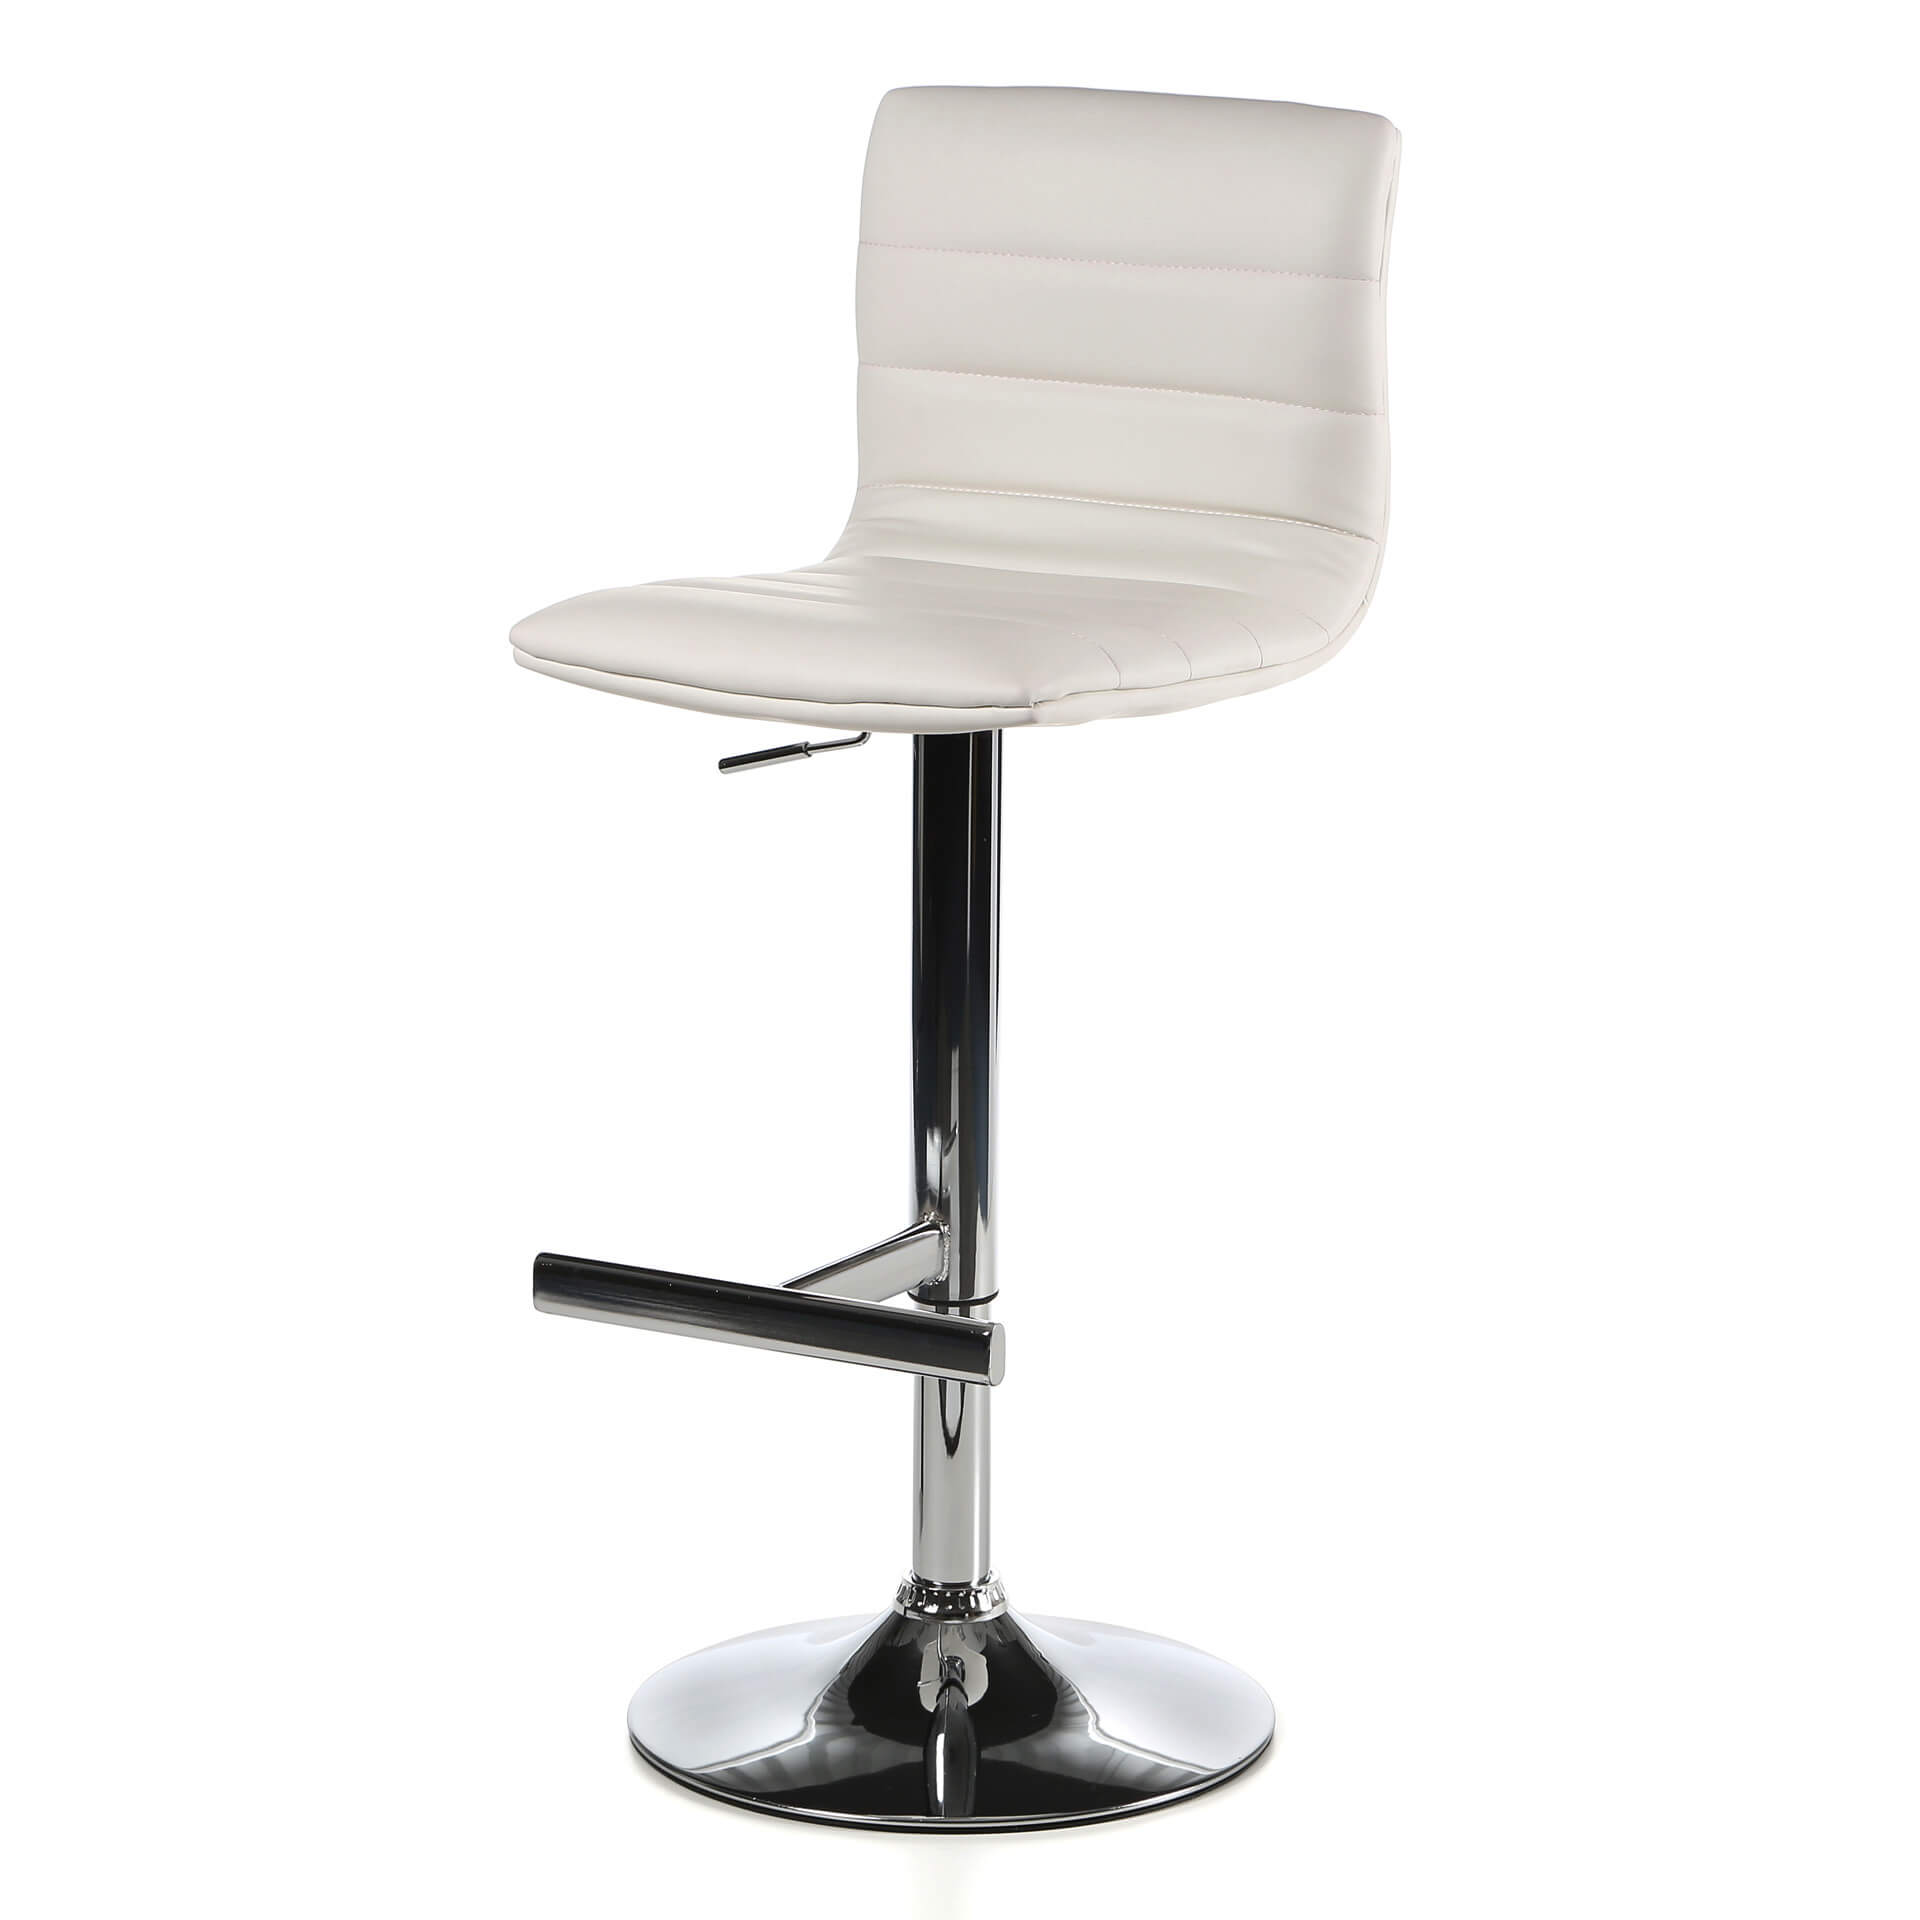 This is a more substantial modern stool design with high back and thick T-bar foot stool. The base's main support post is also think creating a heft not seen with many other modern stool designs. The seat is upholstered in white leatherette.